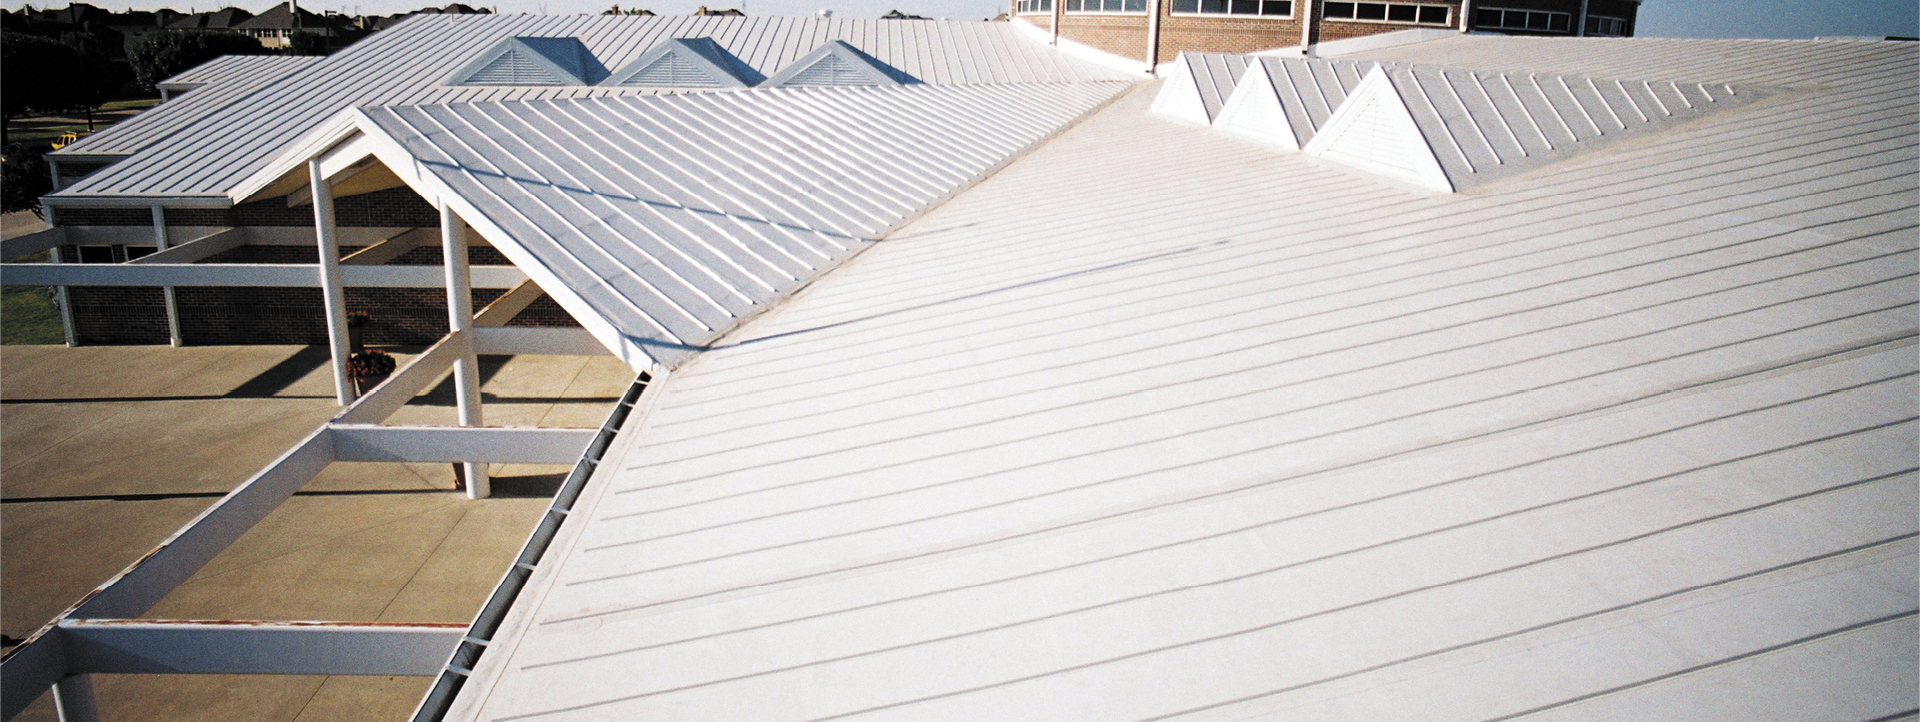 Learn About Vinyl Roofing Membrane Benefits And Uses